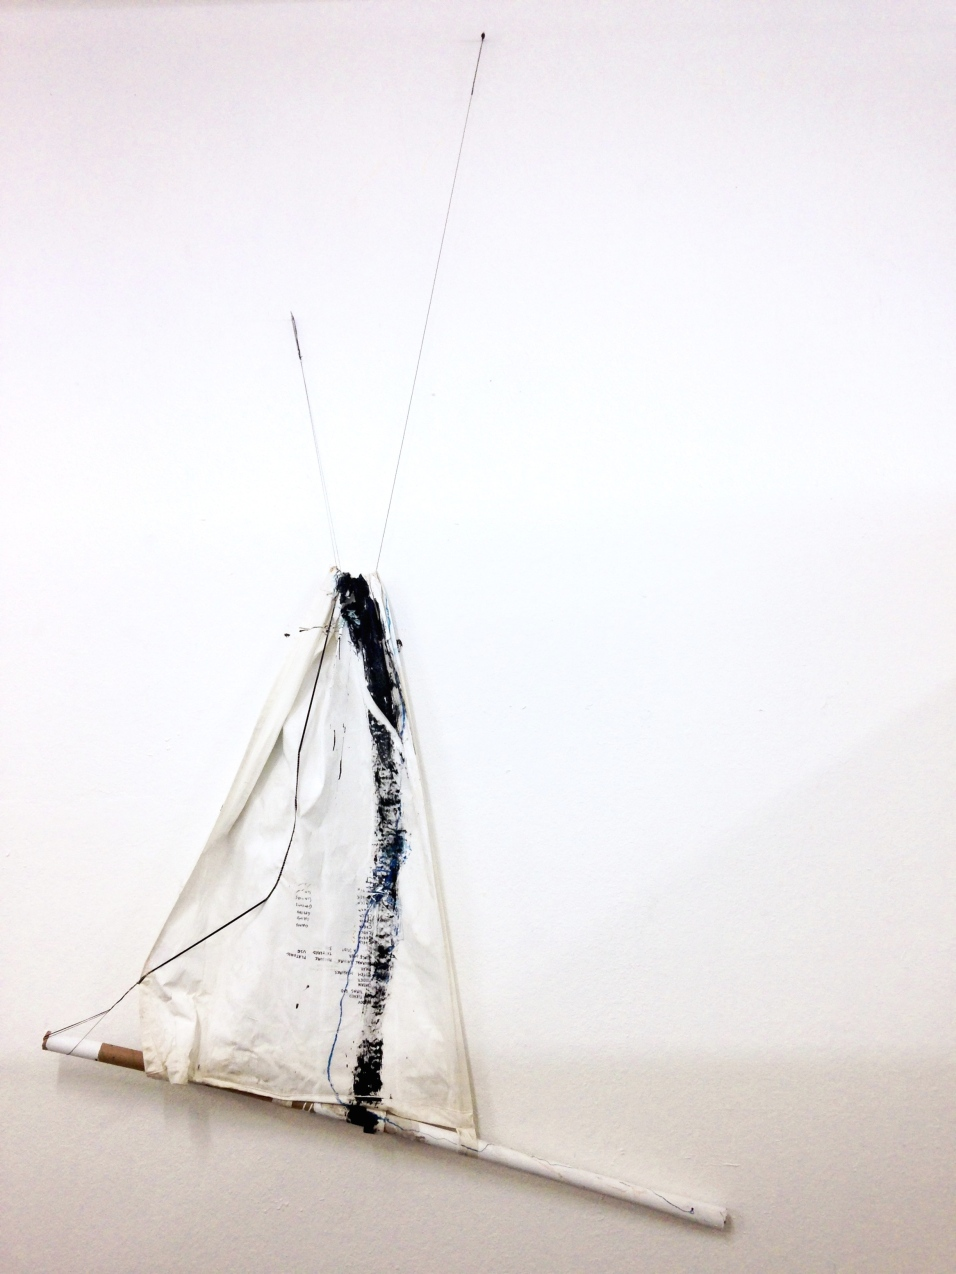 Surrender Flag (Resurrection) - cardboard tubing, rubber cords, latex paint, watercolor crayon, and thread on canvas - dimensions variable - 2015